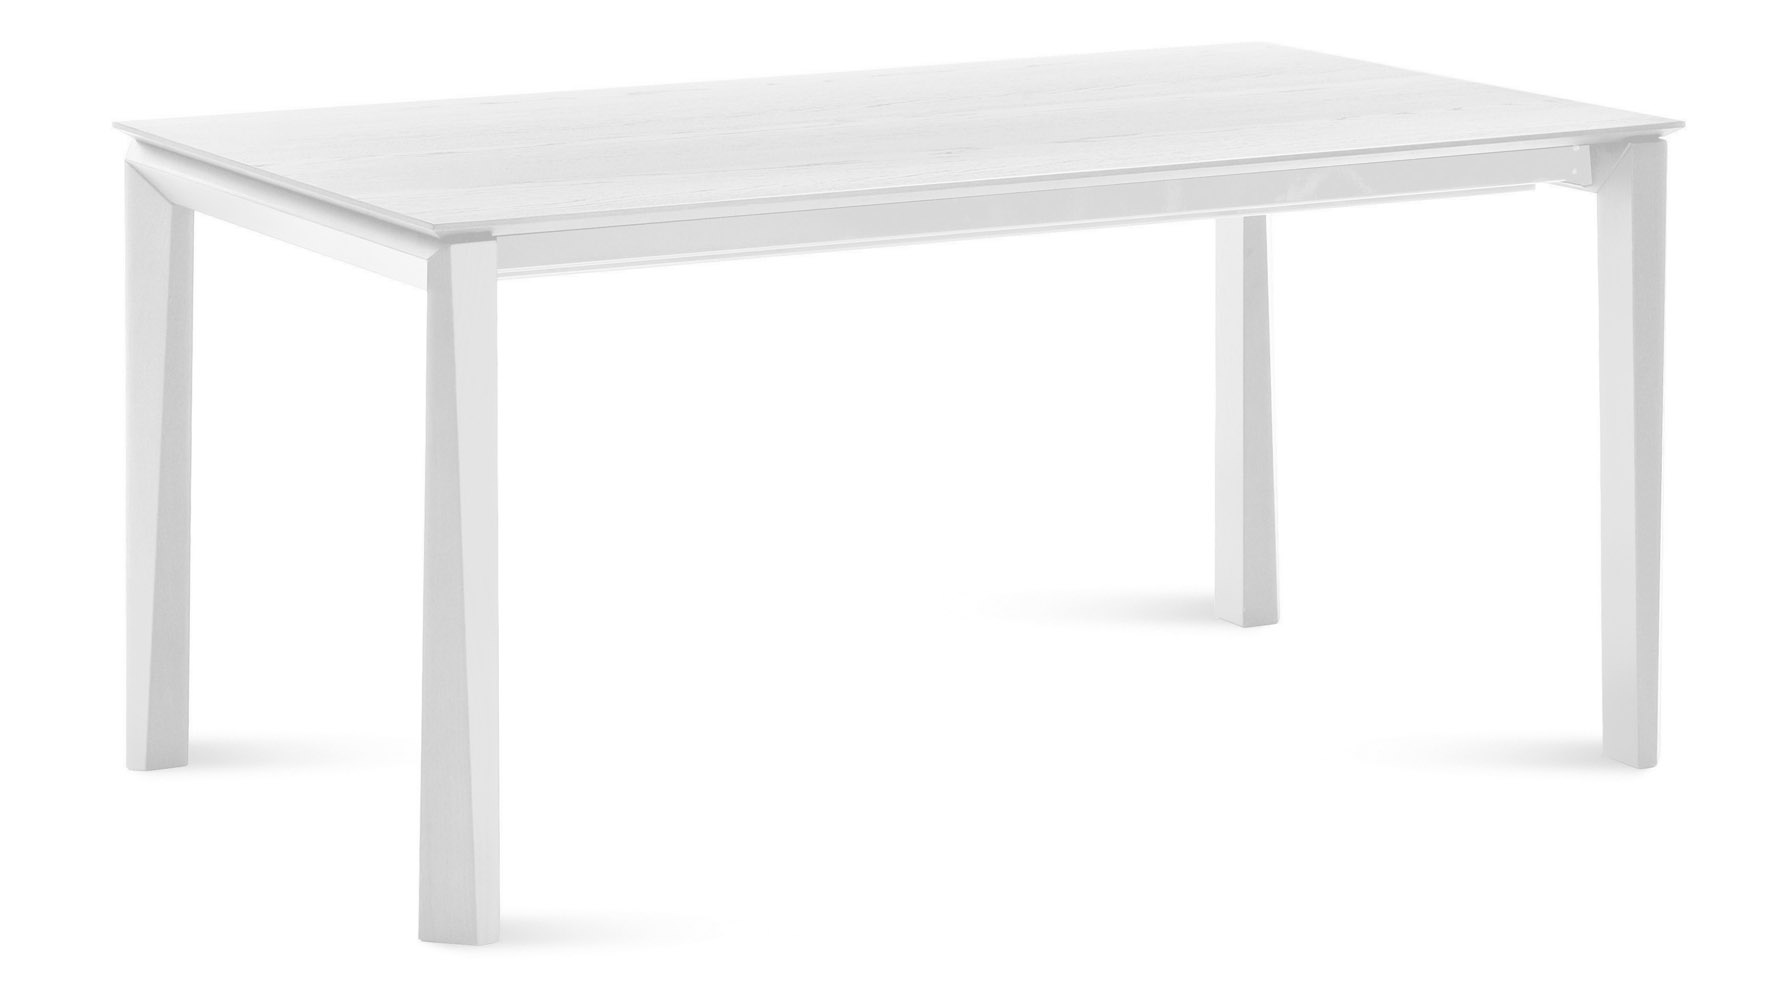 Extendable Rectangular White Matte Lacquer Cortona Dining Table Zuri Furniture